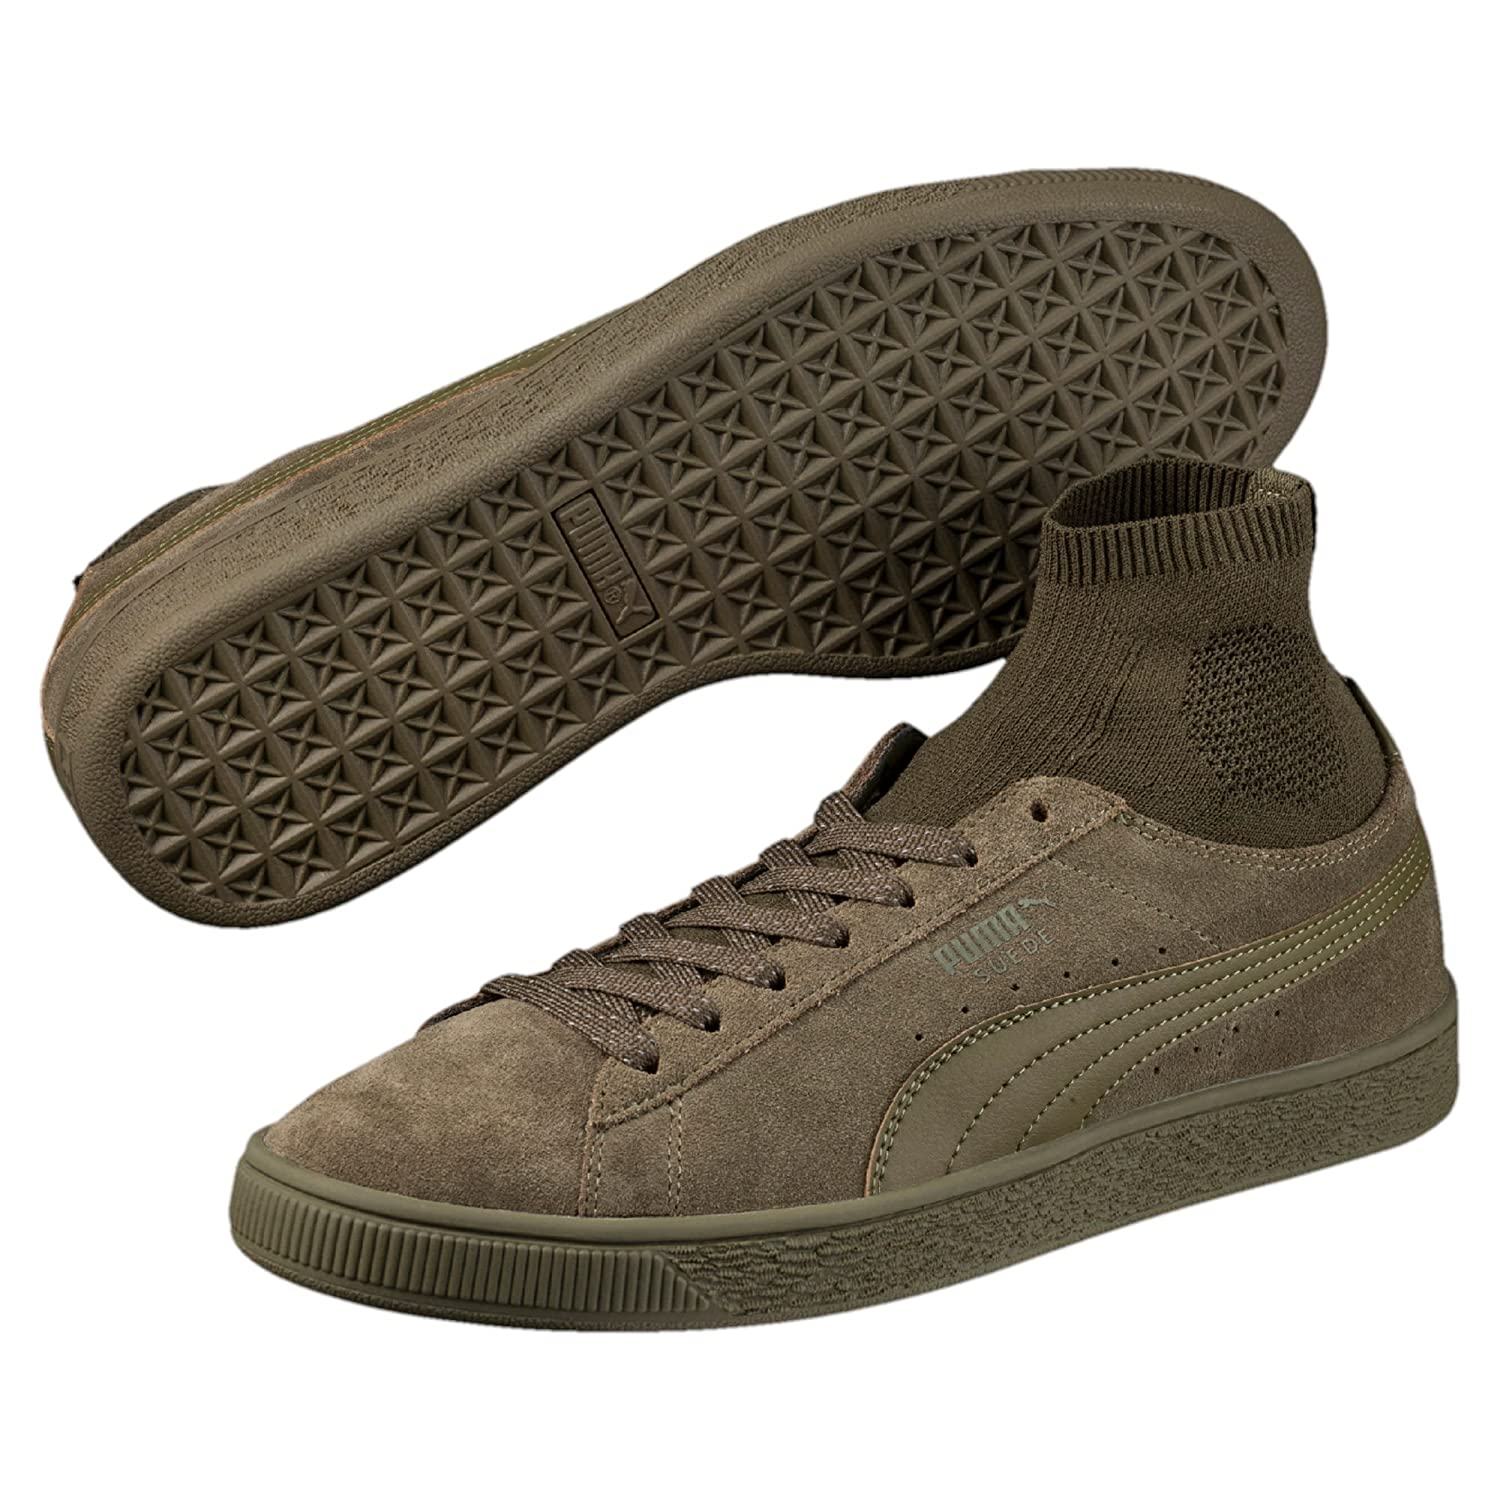 Puma Suede Classic Sock Chaussure Mode Sneakers Unisex Cuir